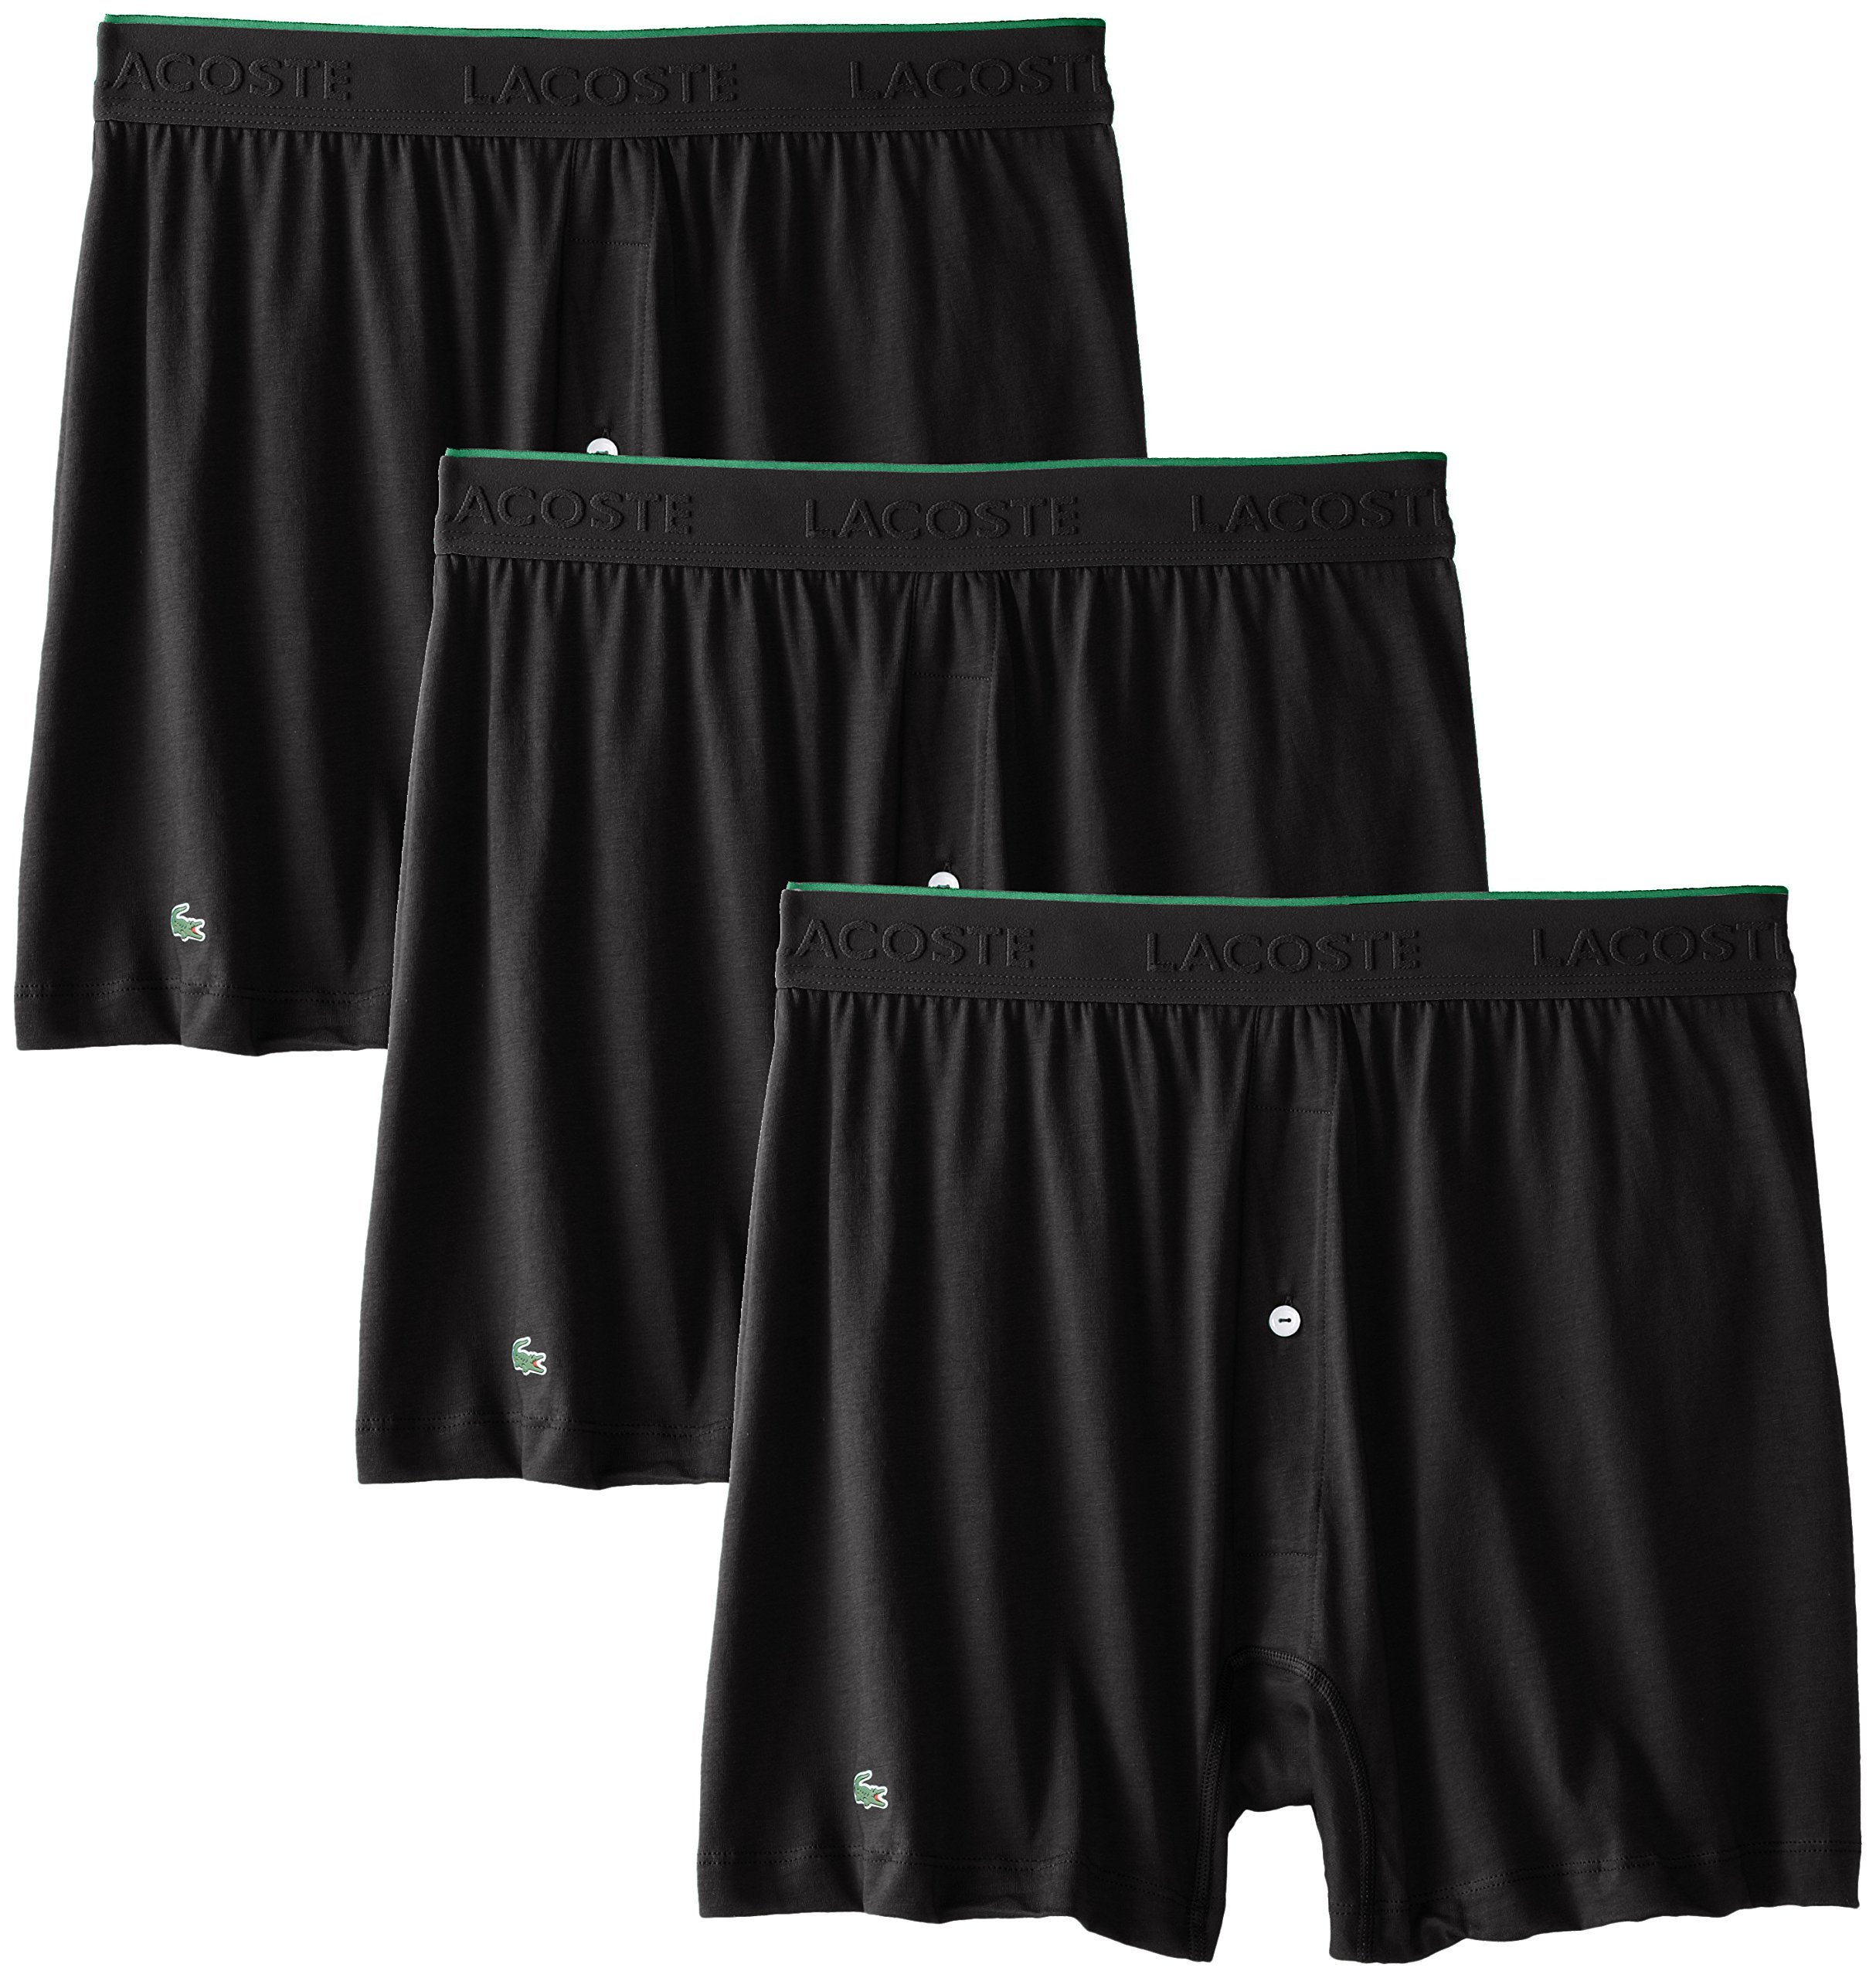 Lacoste Men's 3-Pack Essentials Cotton Knit Boxer, Black, Medium